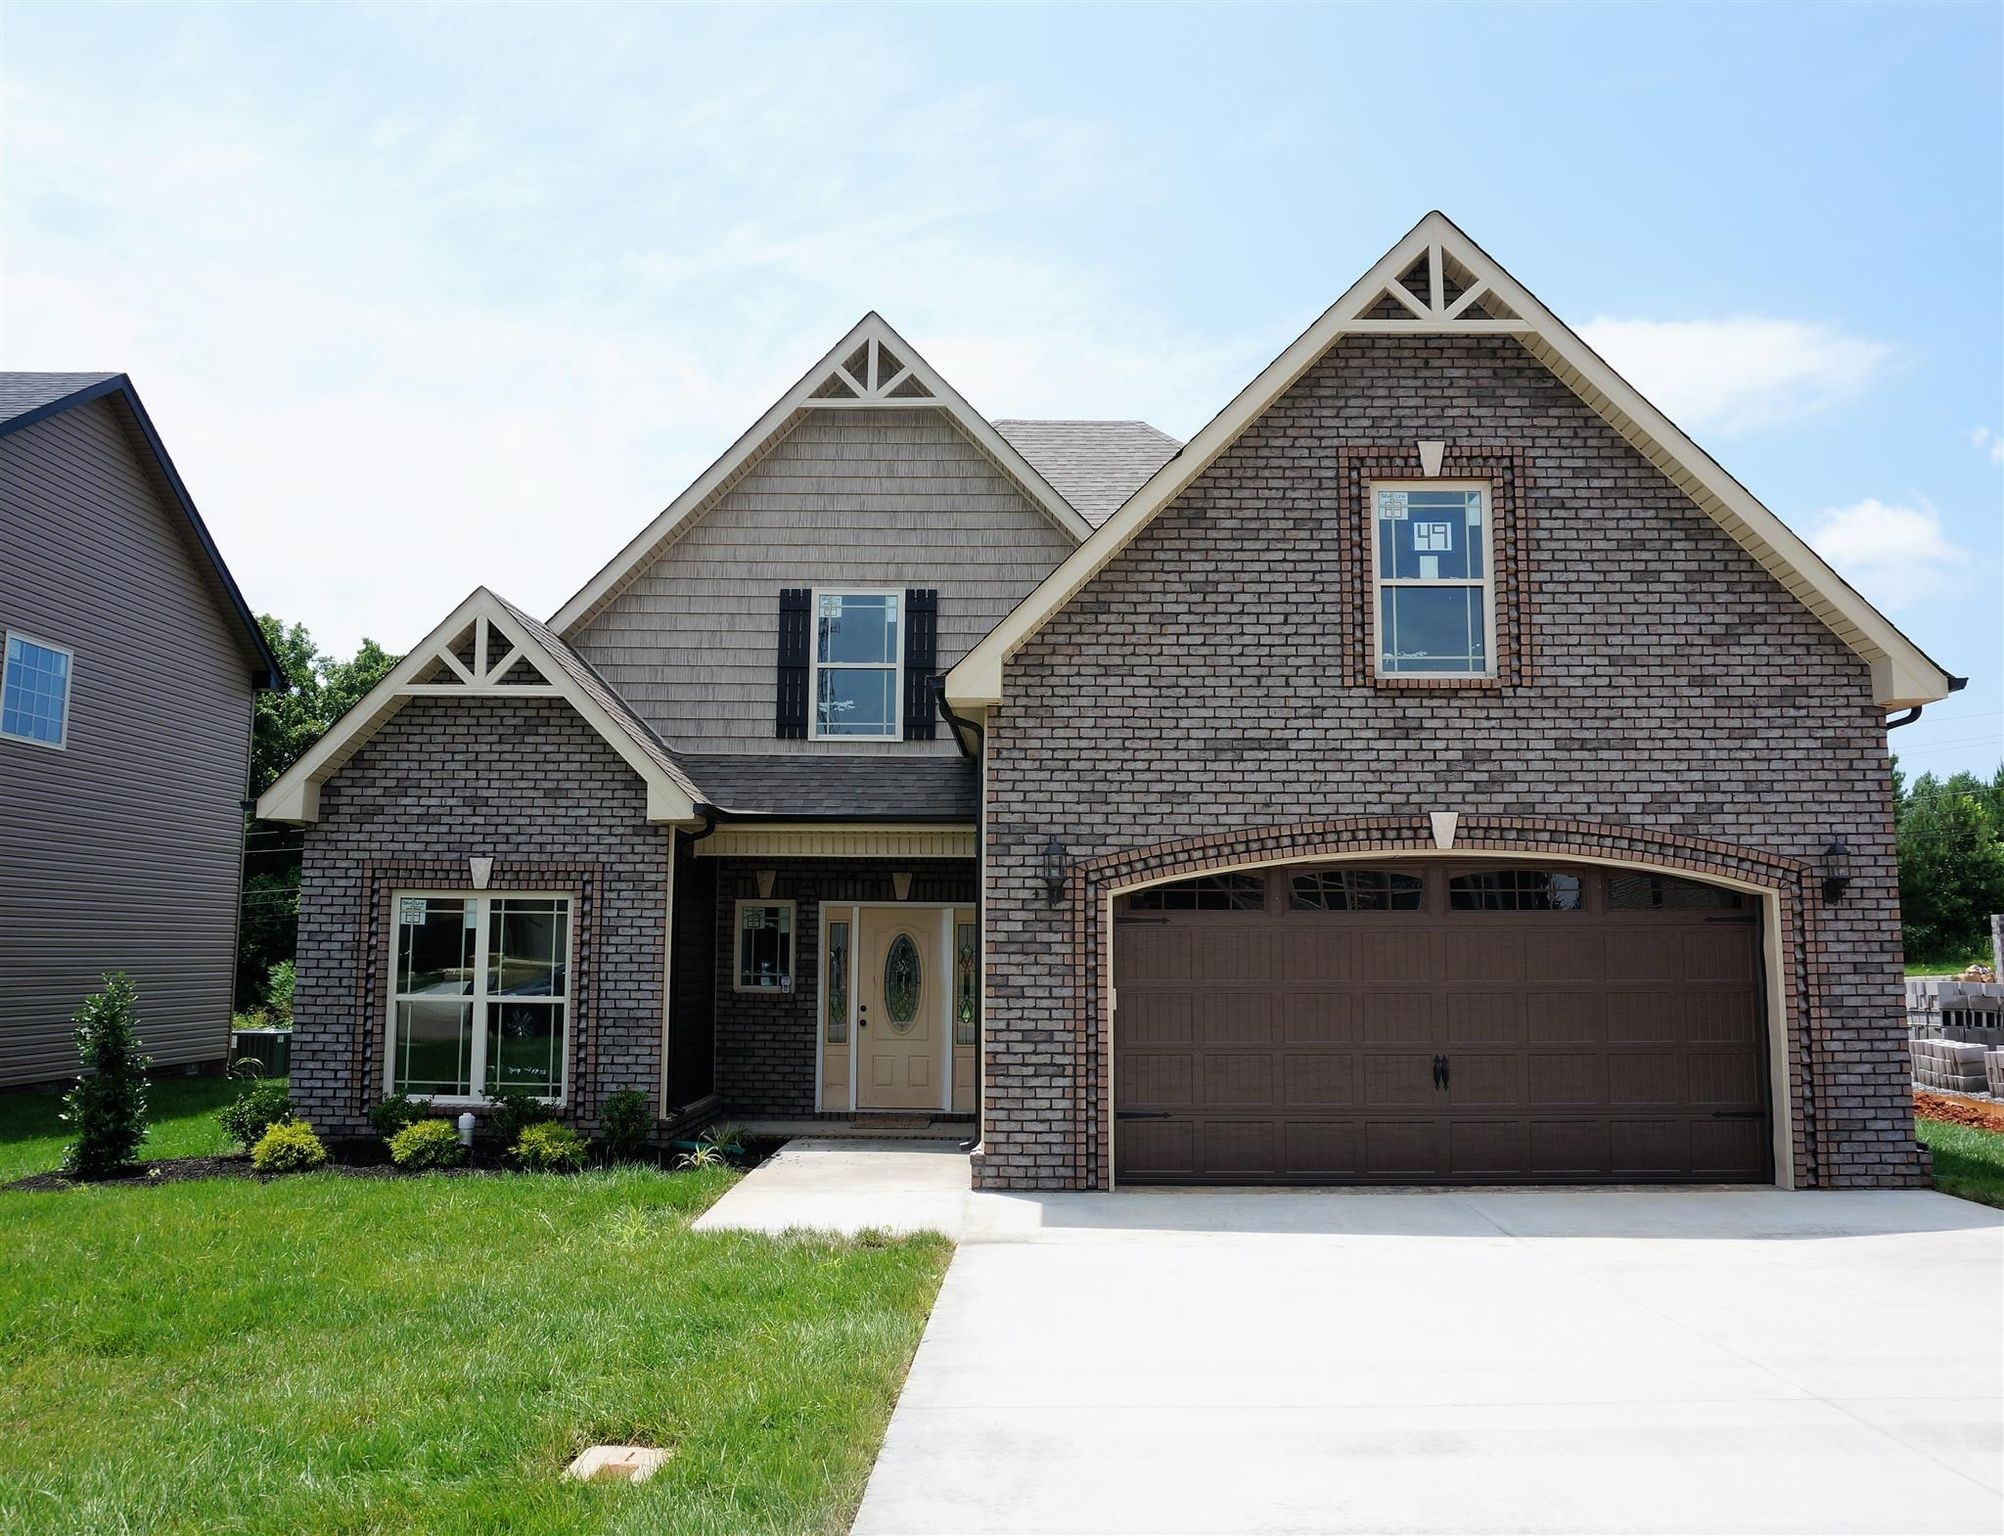 House For Sale In Clarksville Tn